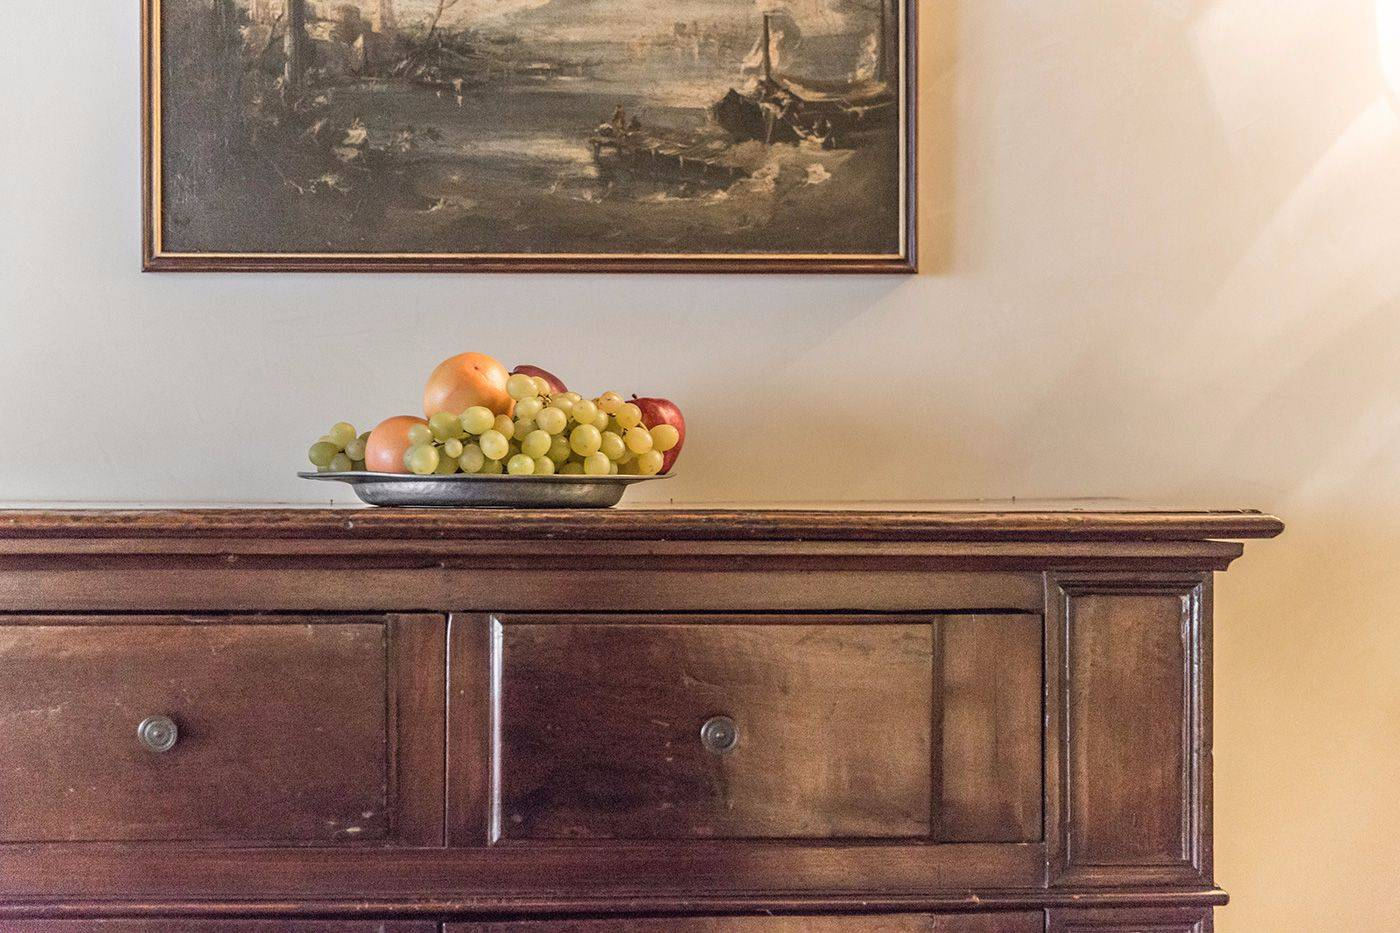 plenty of antique wood, paintings and interior details